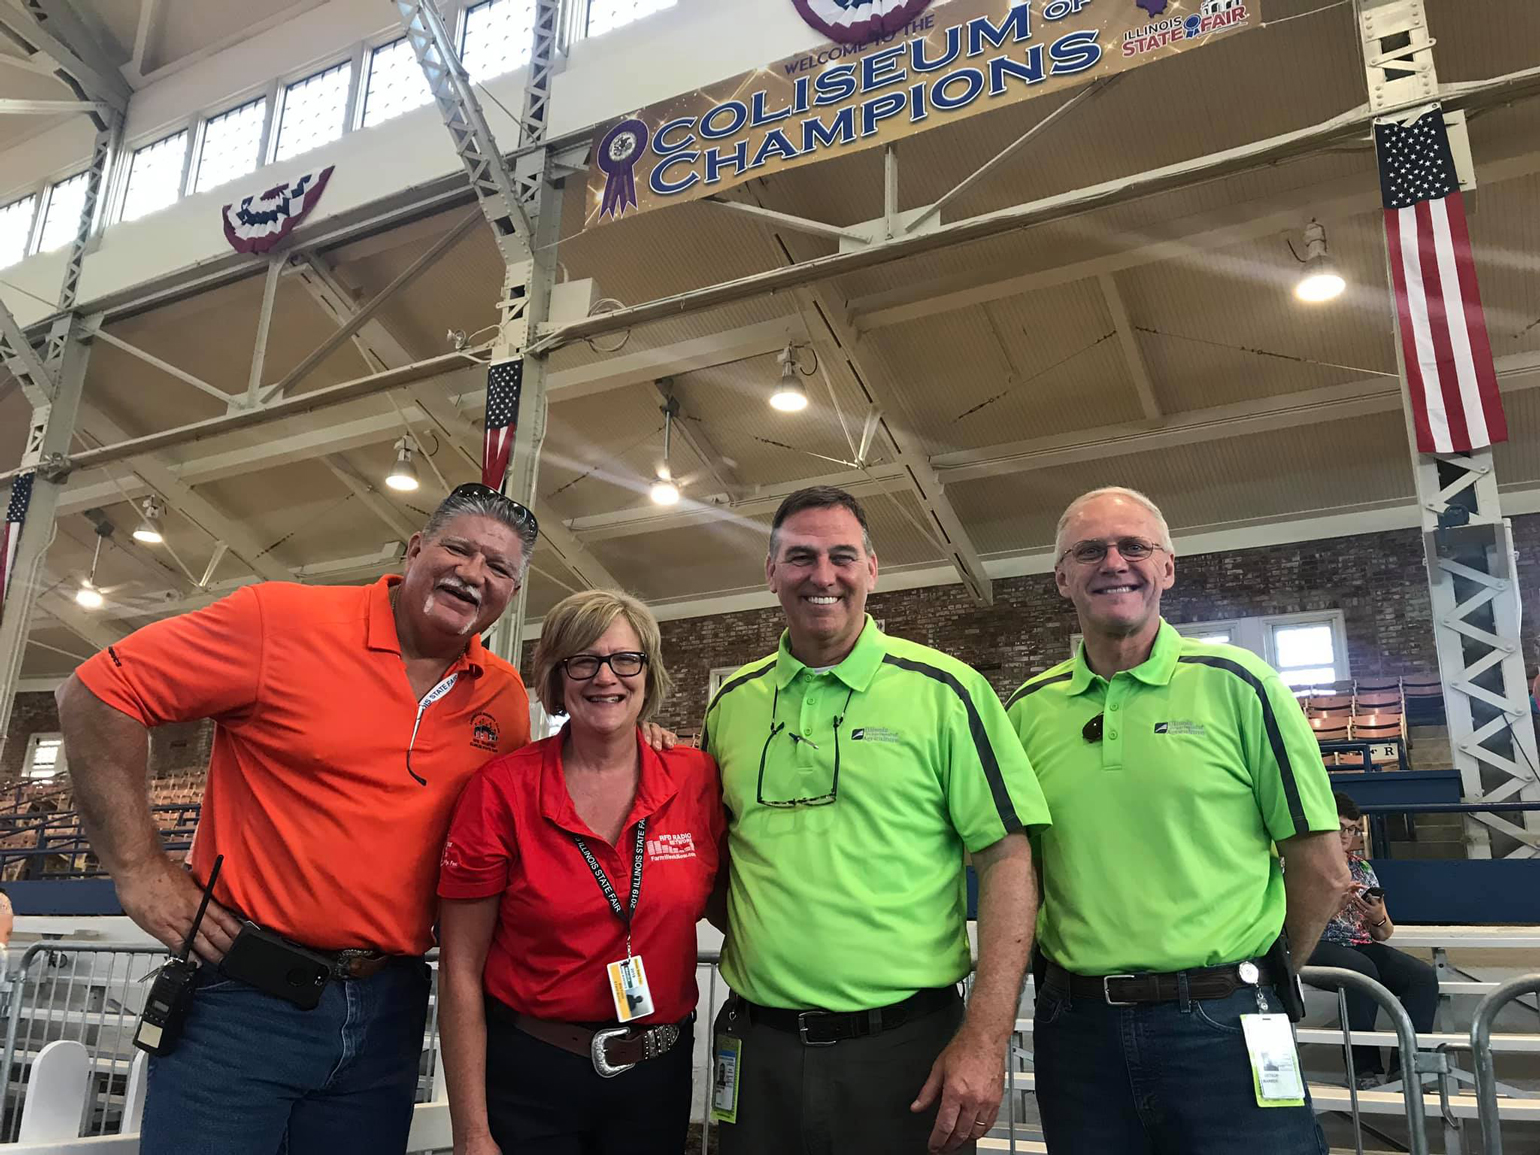 Kevin Gordon, Rita Frazer, John Sullivan, Warren Goetsch in Coliseum at Illinois State Fair